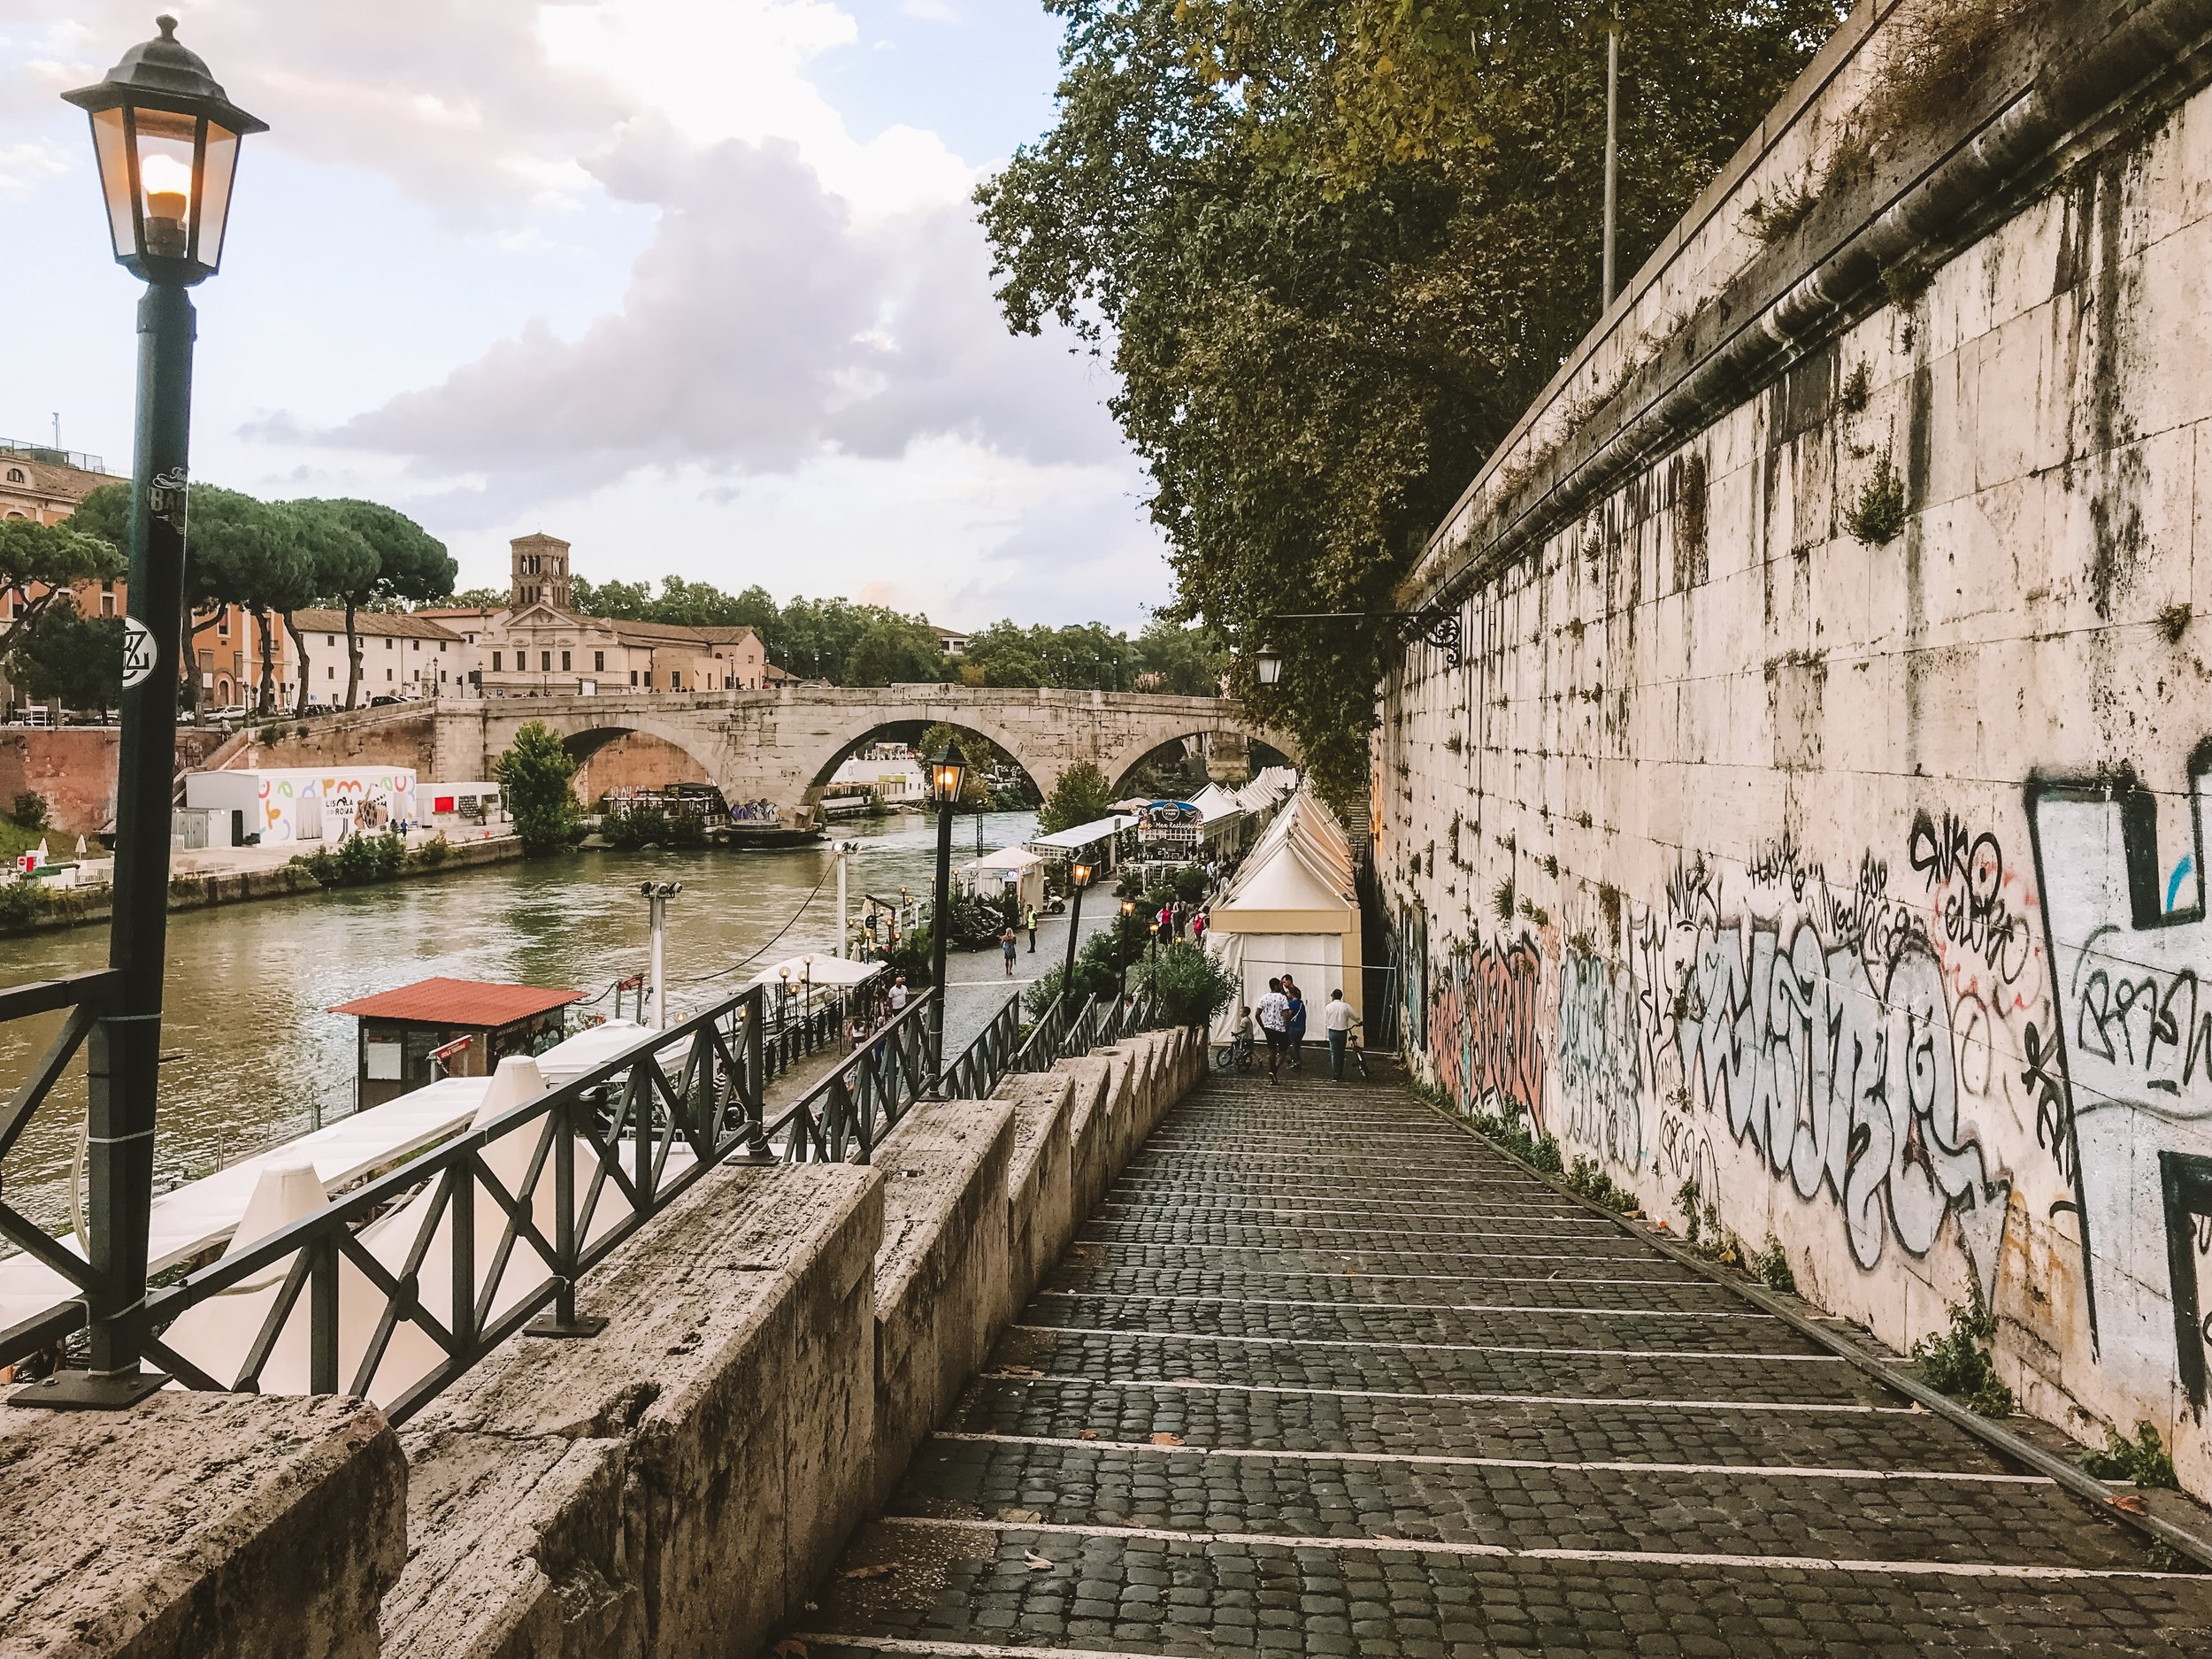 A walk by the Tiber River